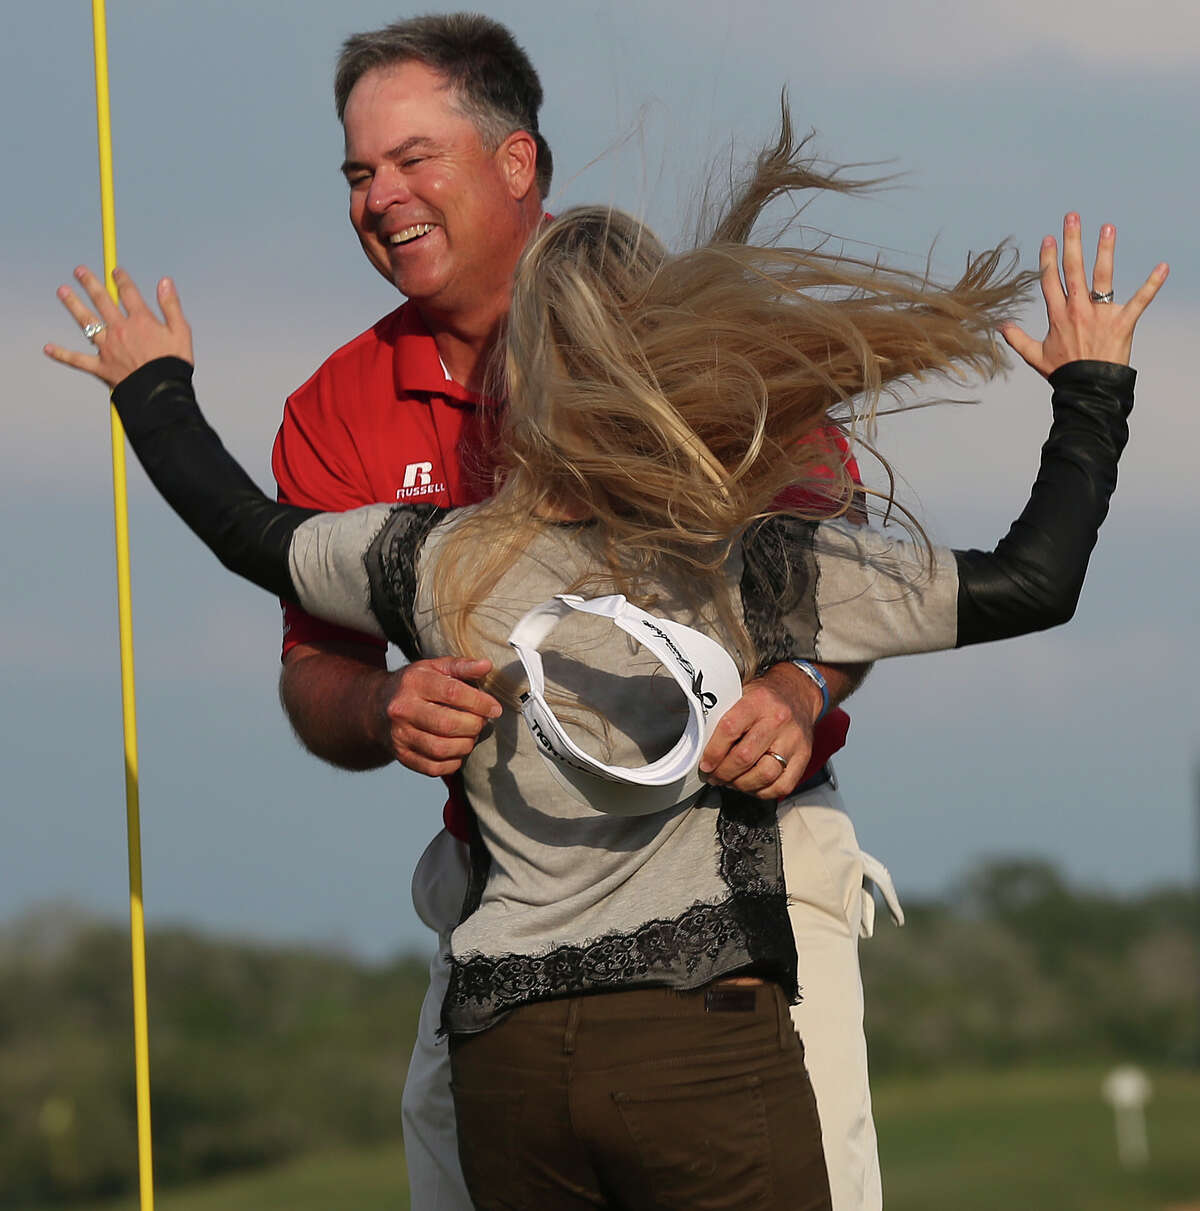 Kenny Perry, right, celebrates with his daughter, Lindsey Kennemer after winning the AT&T Championship at the TPC San Antonio Canyons Course, Sunday, Oct. 27, 2013. Perry, of Franklin, New York beat Bernhard Langer of Munich, Germany in a one-hole sudden death playoff to for a 13-under-par round.